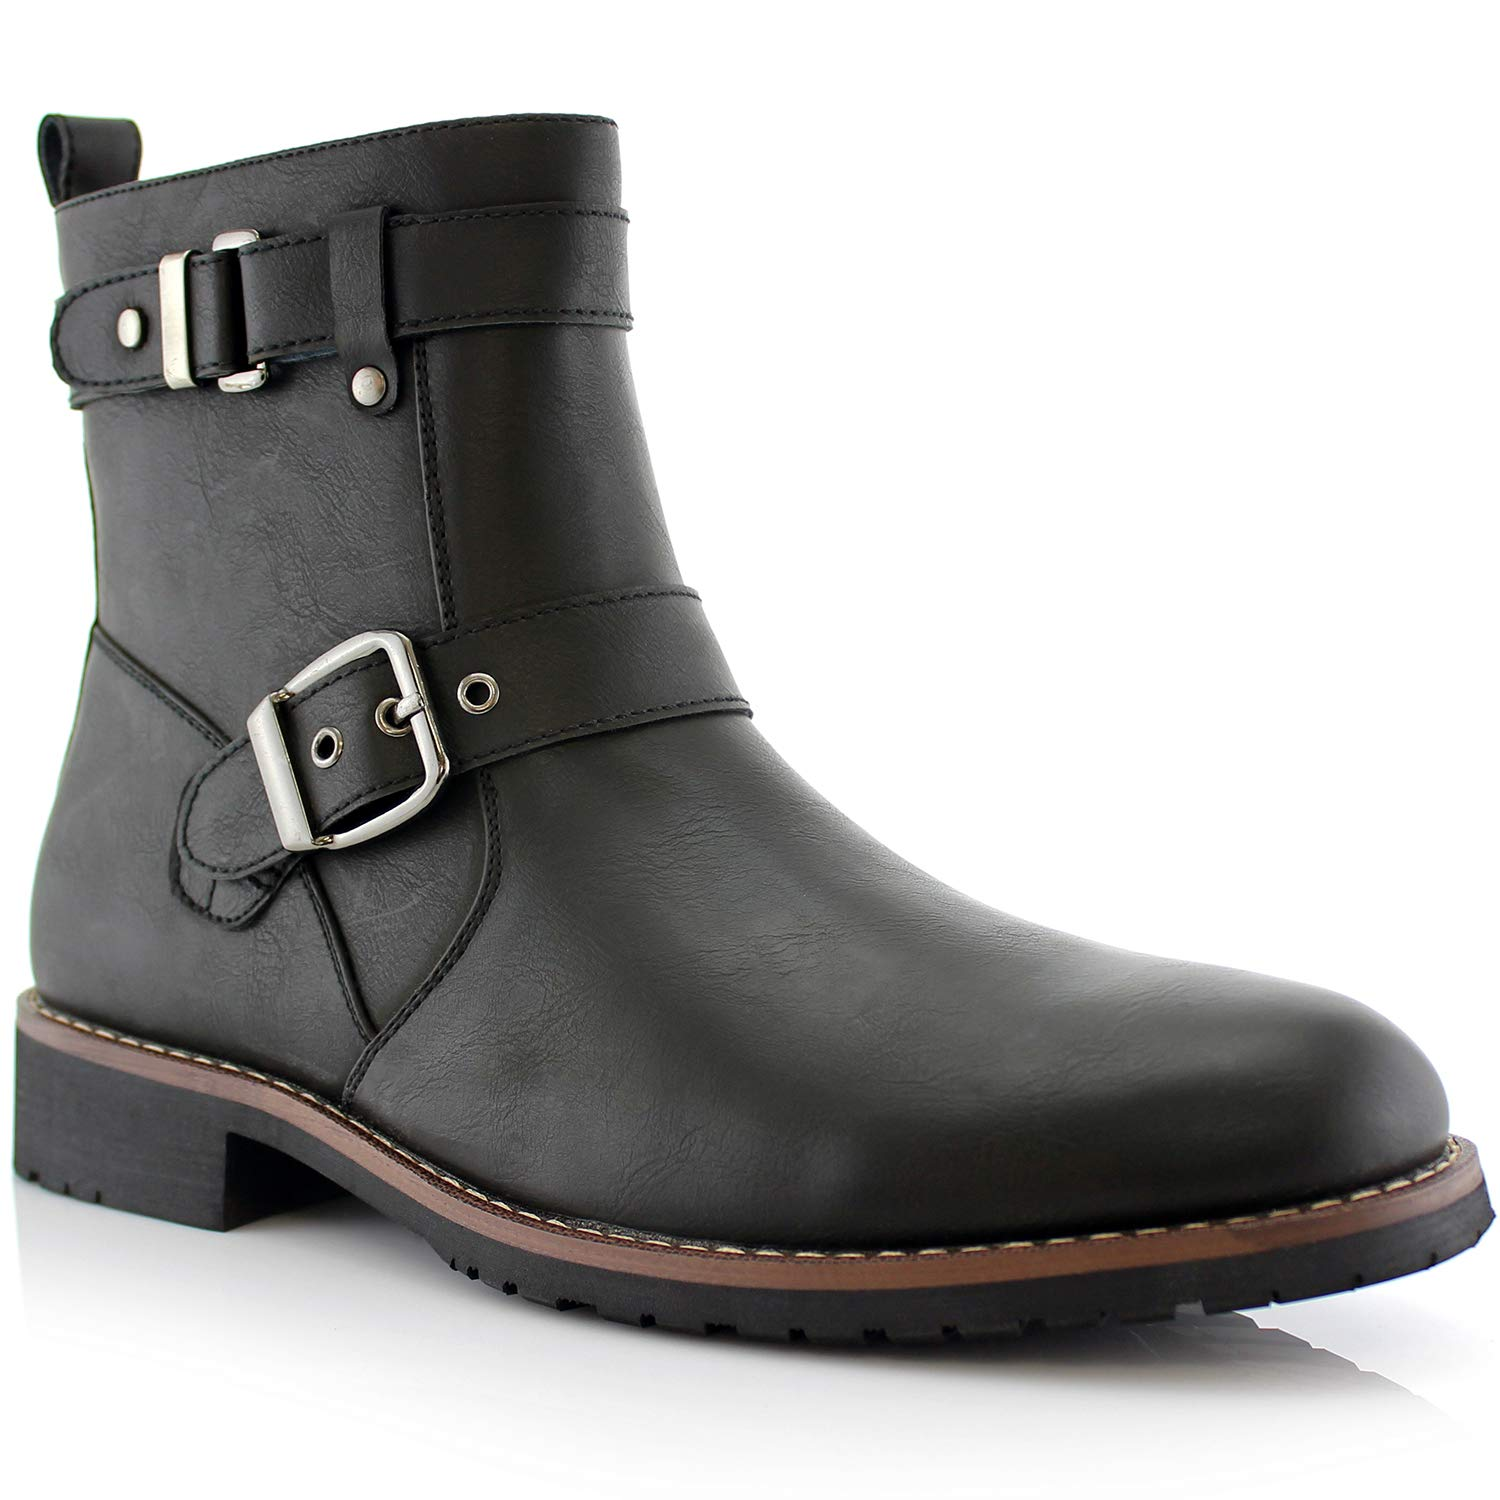 Mens Retro Shoes | Vintage Shoes & Boots Polar Fox Wyatt MPX608005 Mens Casual Engineer Zipper and Buckle Motorcycle Boots $52.69 AT vintagedancer.com